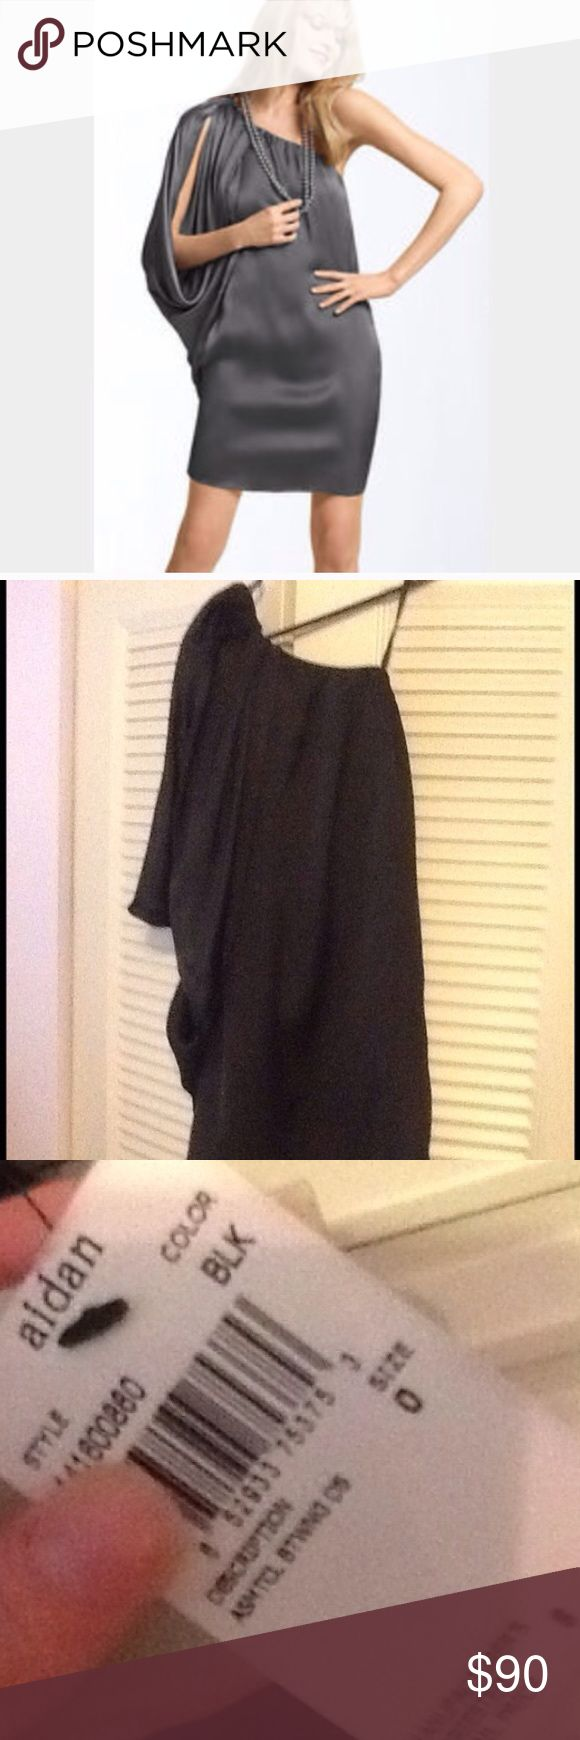 🎉Aiden Mattox Black dress🎉SALE🎉 Beautiful dress, New with tags black, never worn, fast ship✅ Dresses One Shoulder